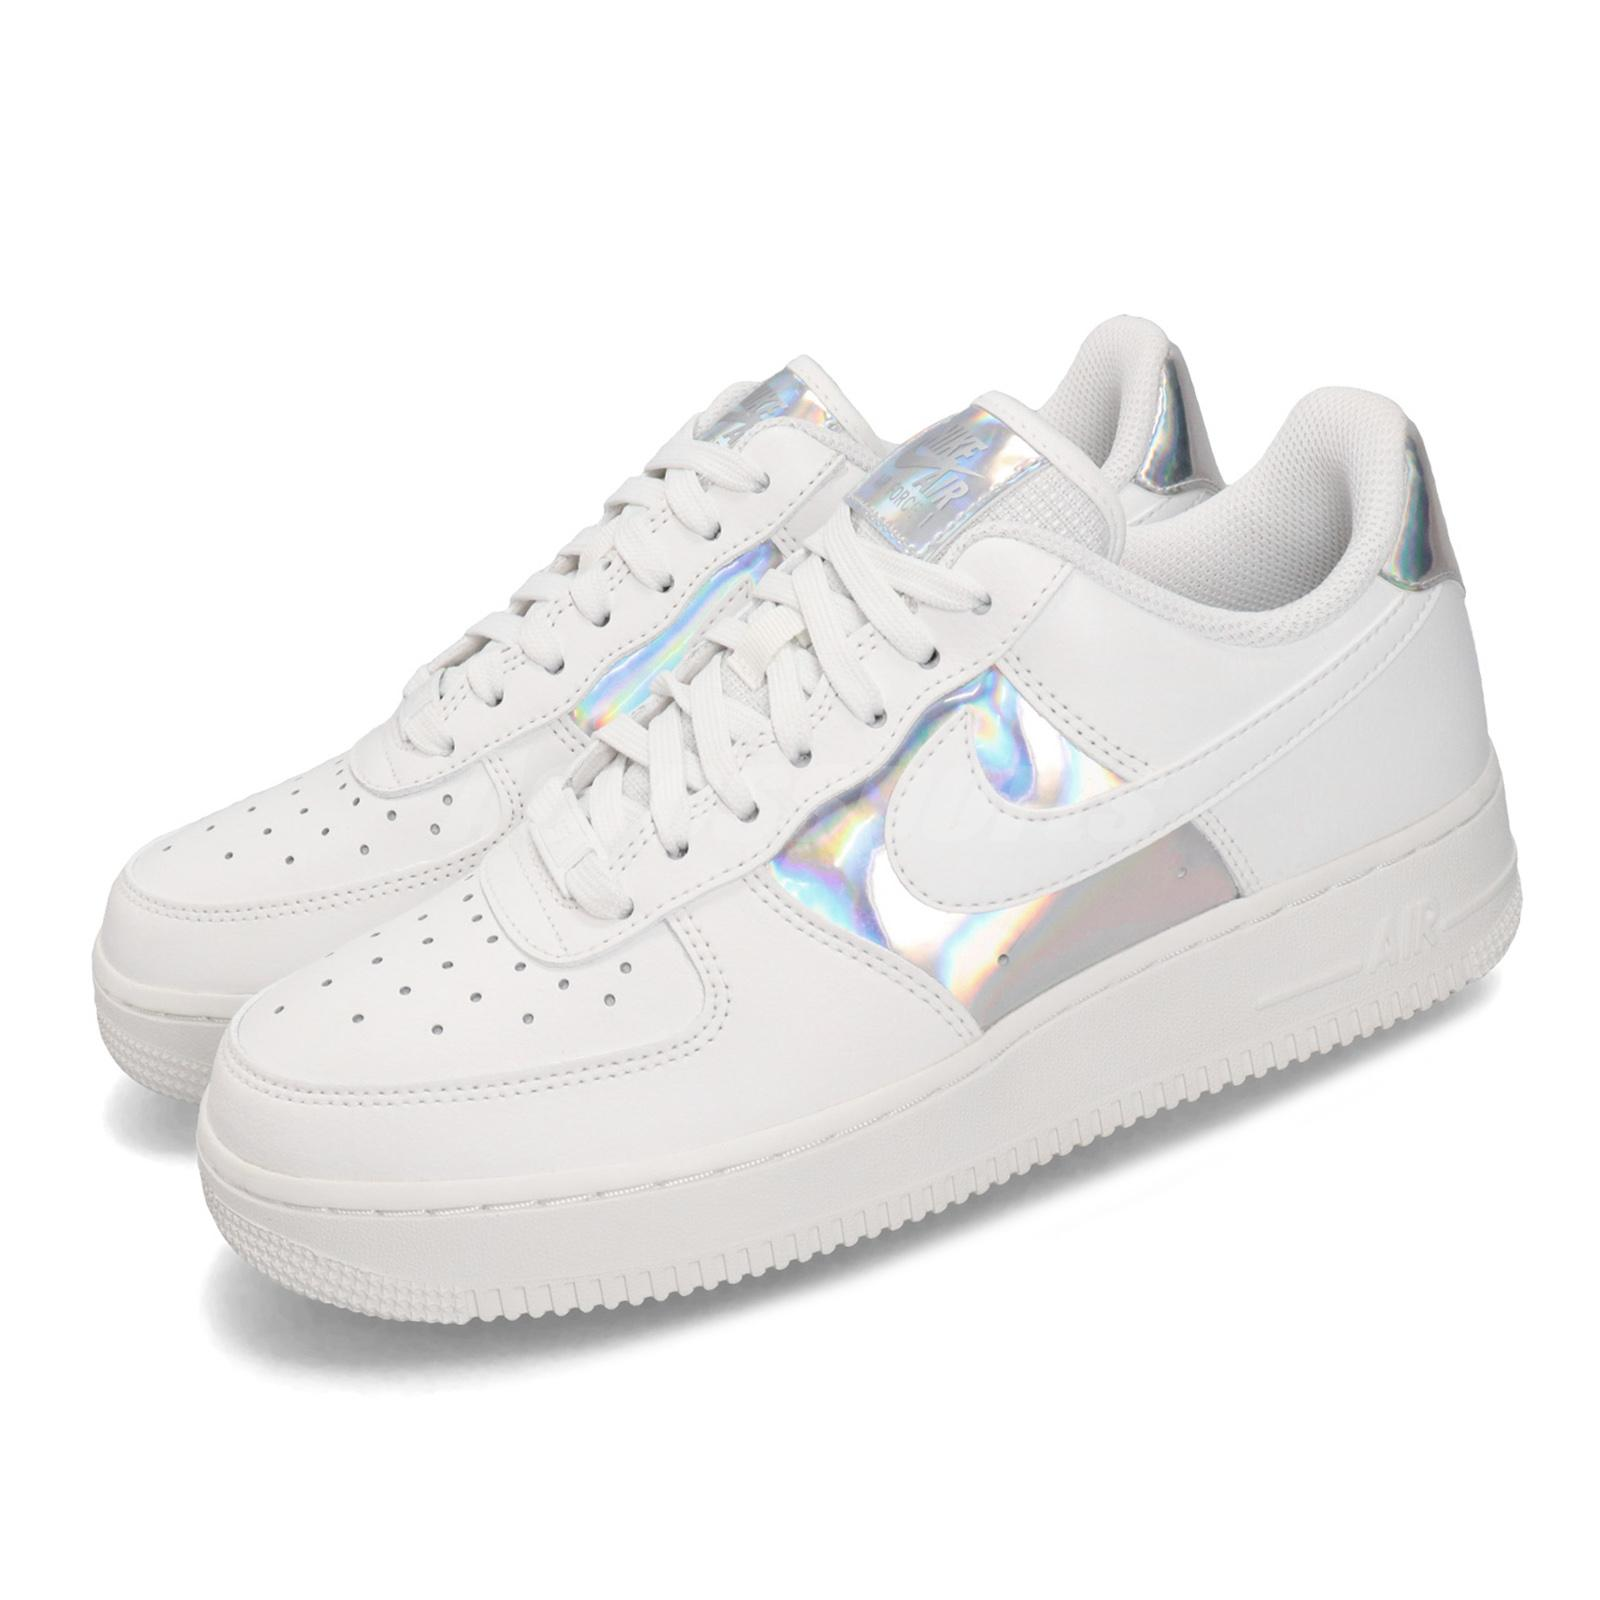 Details about Nike Wmns Air Force 1 Low White Iridescent Silver Womens Casual Shoes CJ9704 100